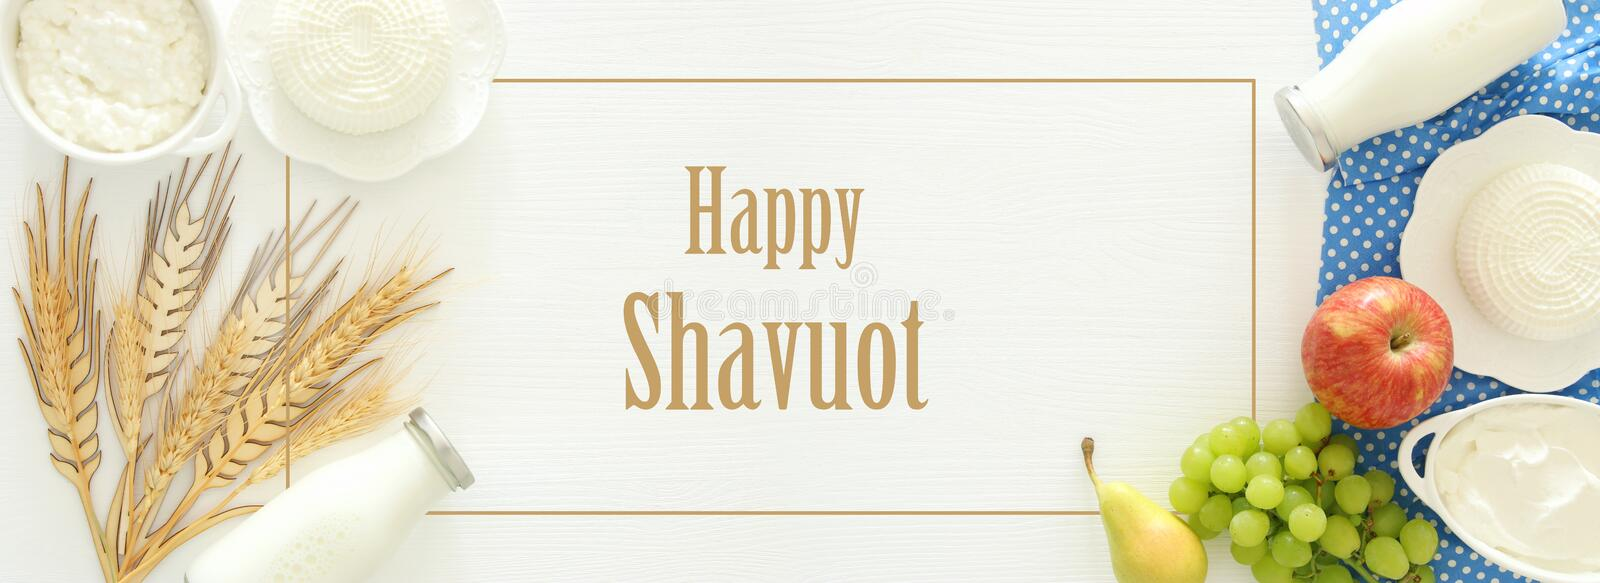 Top view image of dairy products and fruits on wooden background. Symbols of jewish holiday - Shavuot. royalty free stock photography